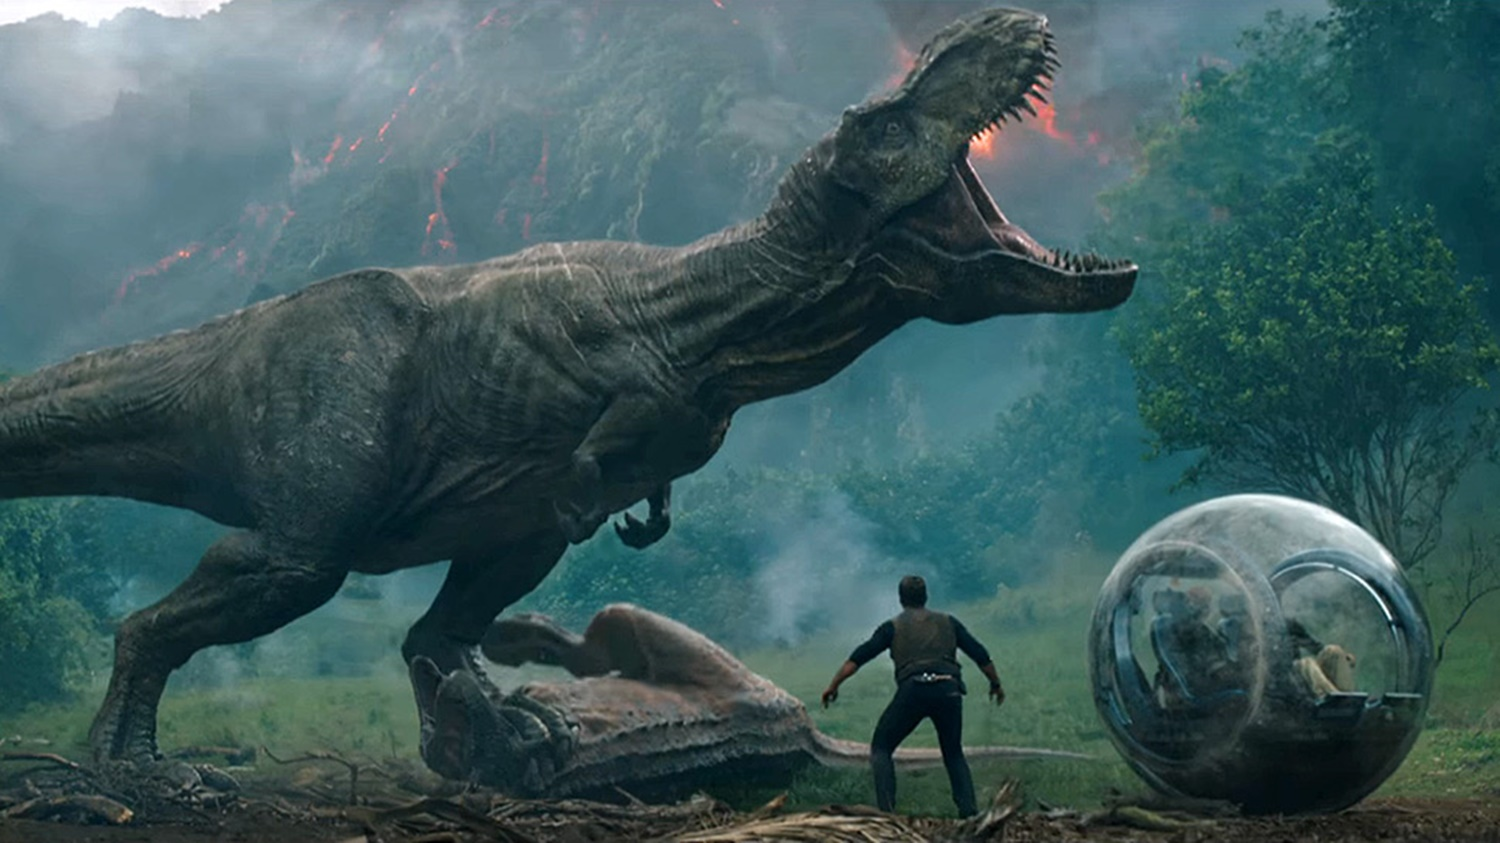 Jurassic World Fallen Kingdom 2 Trailer Is Terrifying